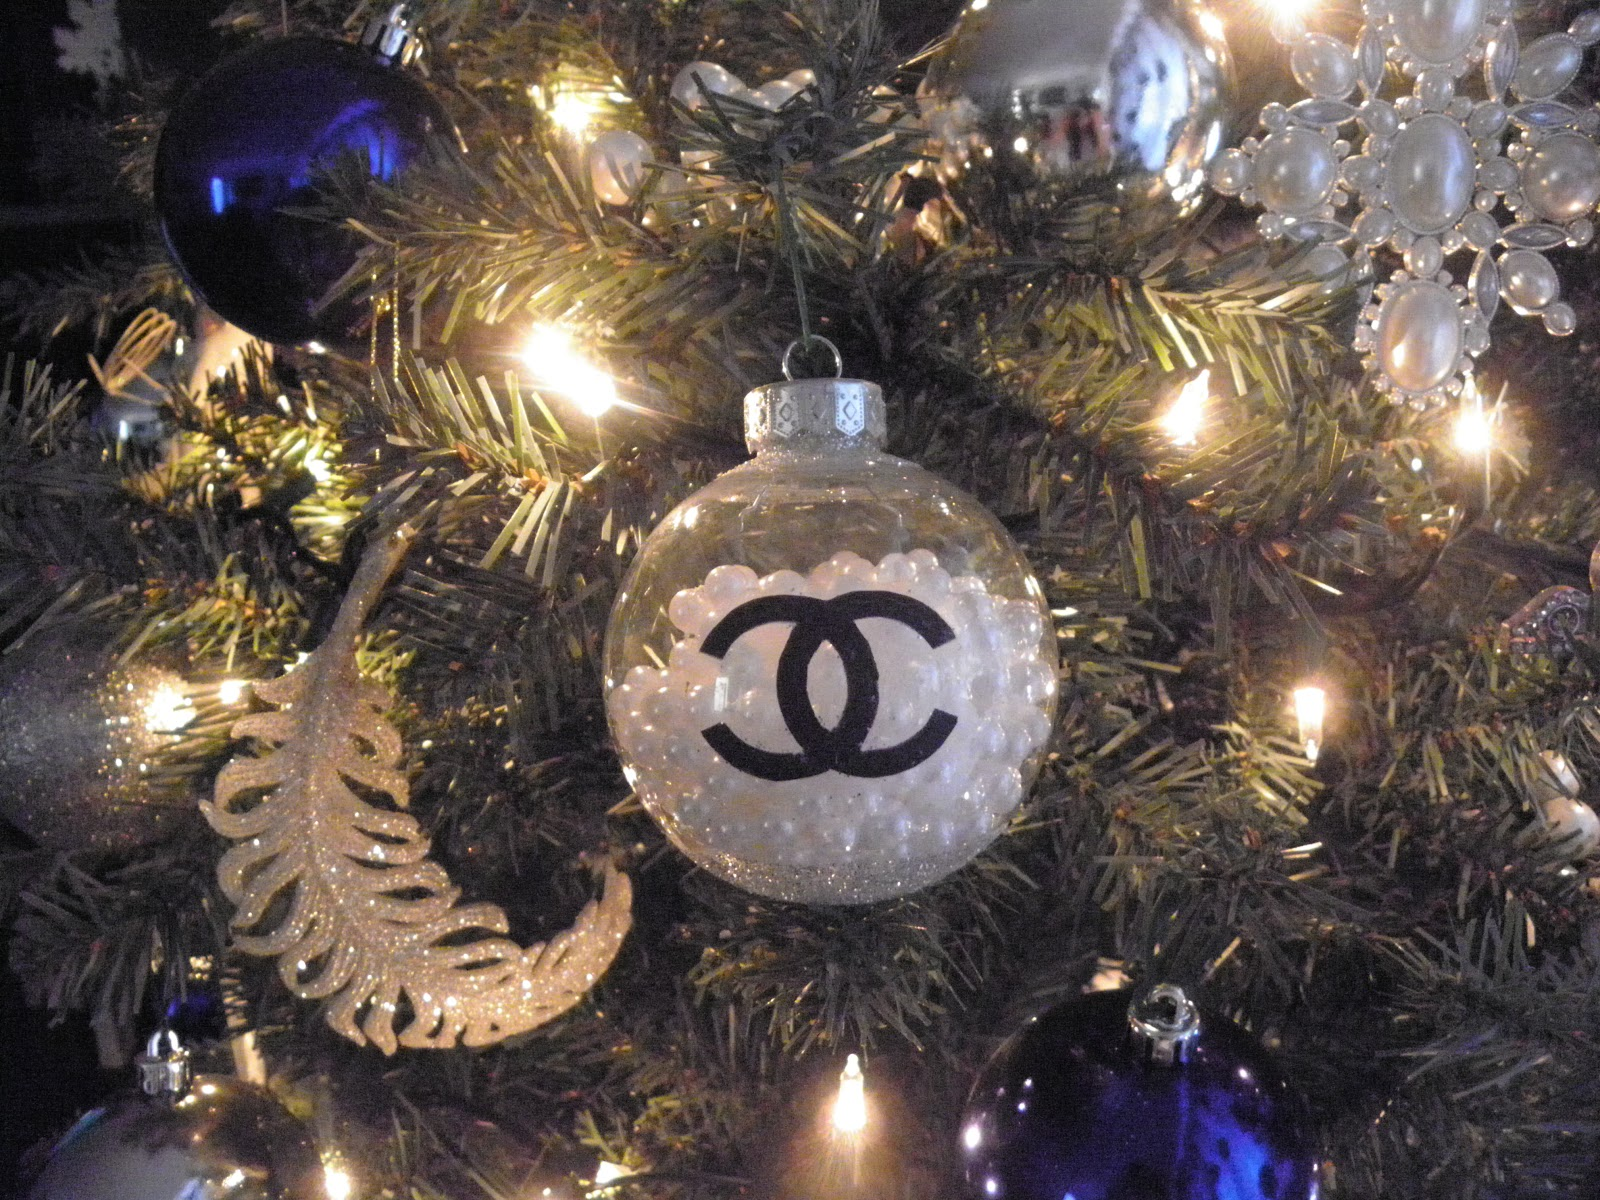 Chanel Christmas Ornaments.Diy Chanel Christmas Ornament Mariam Monroe